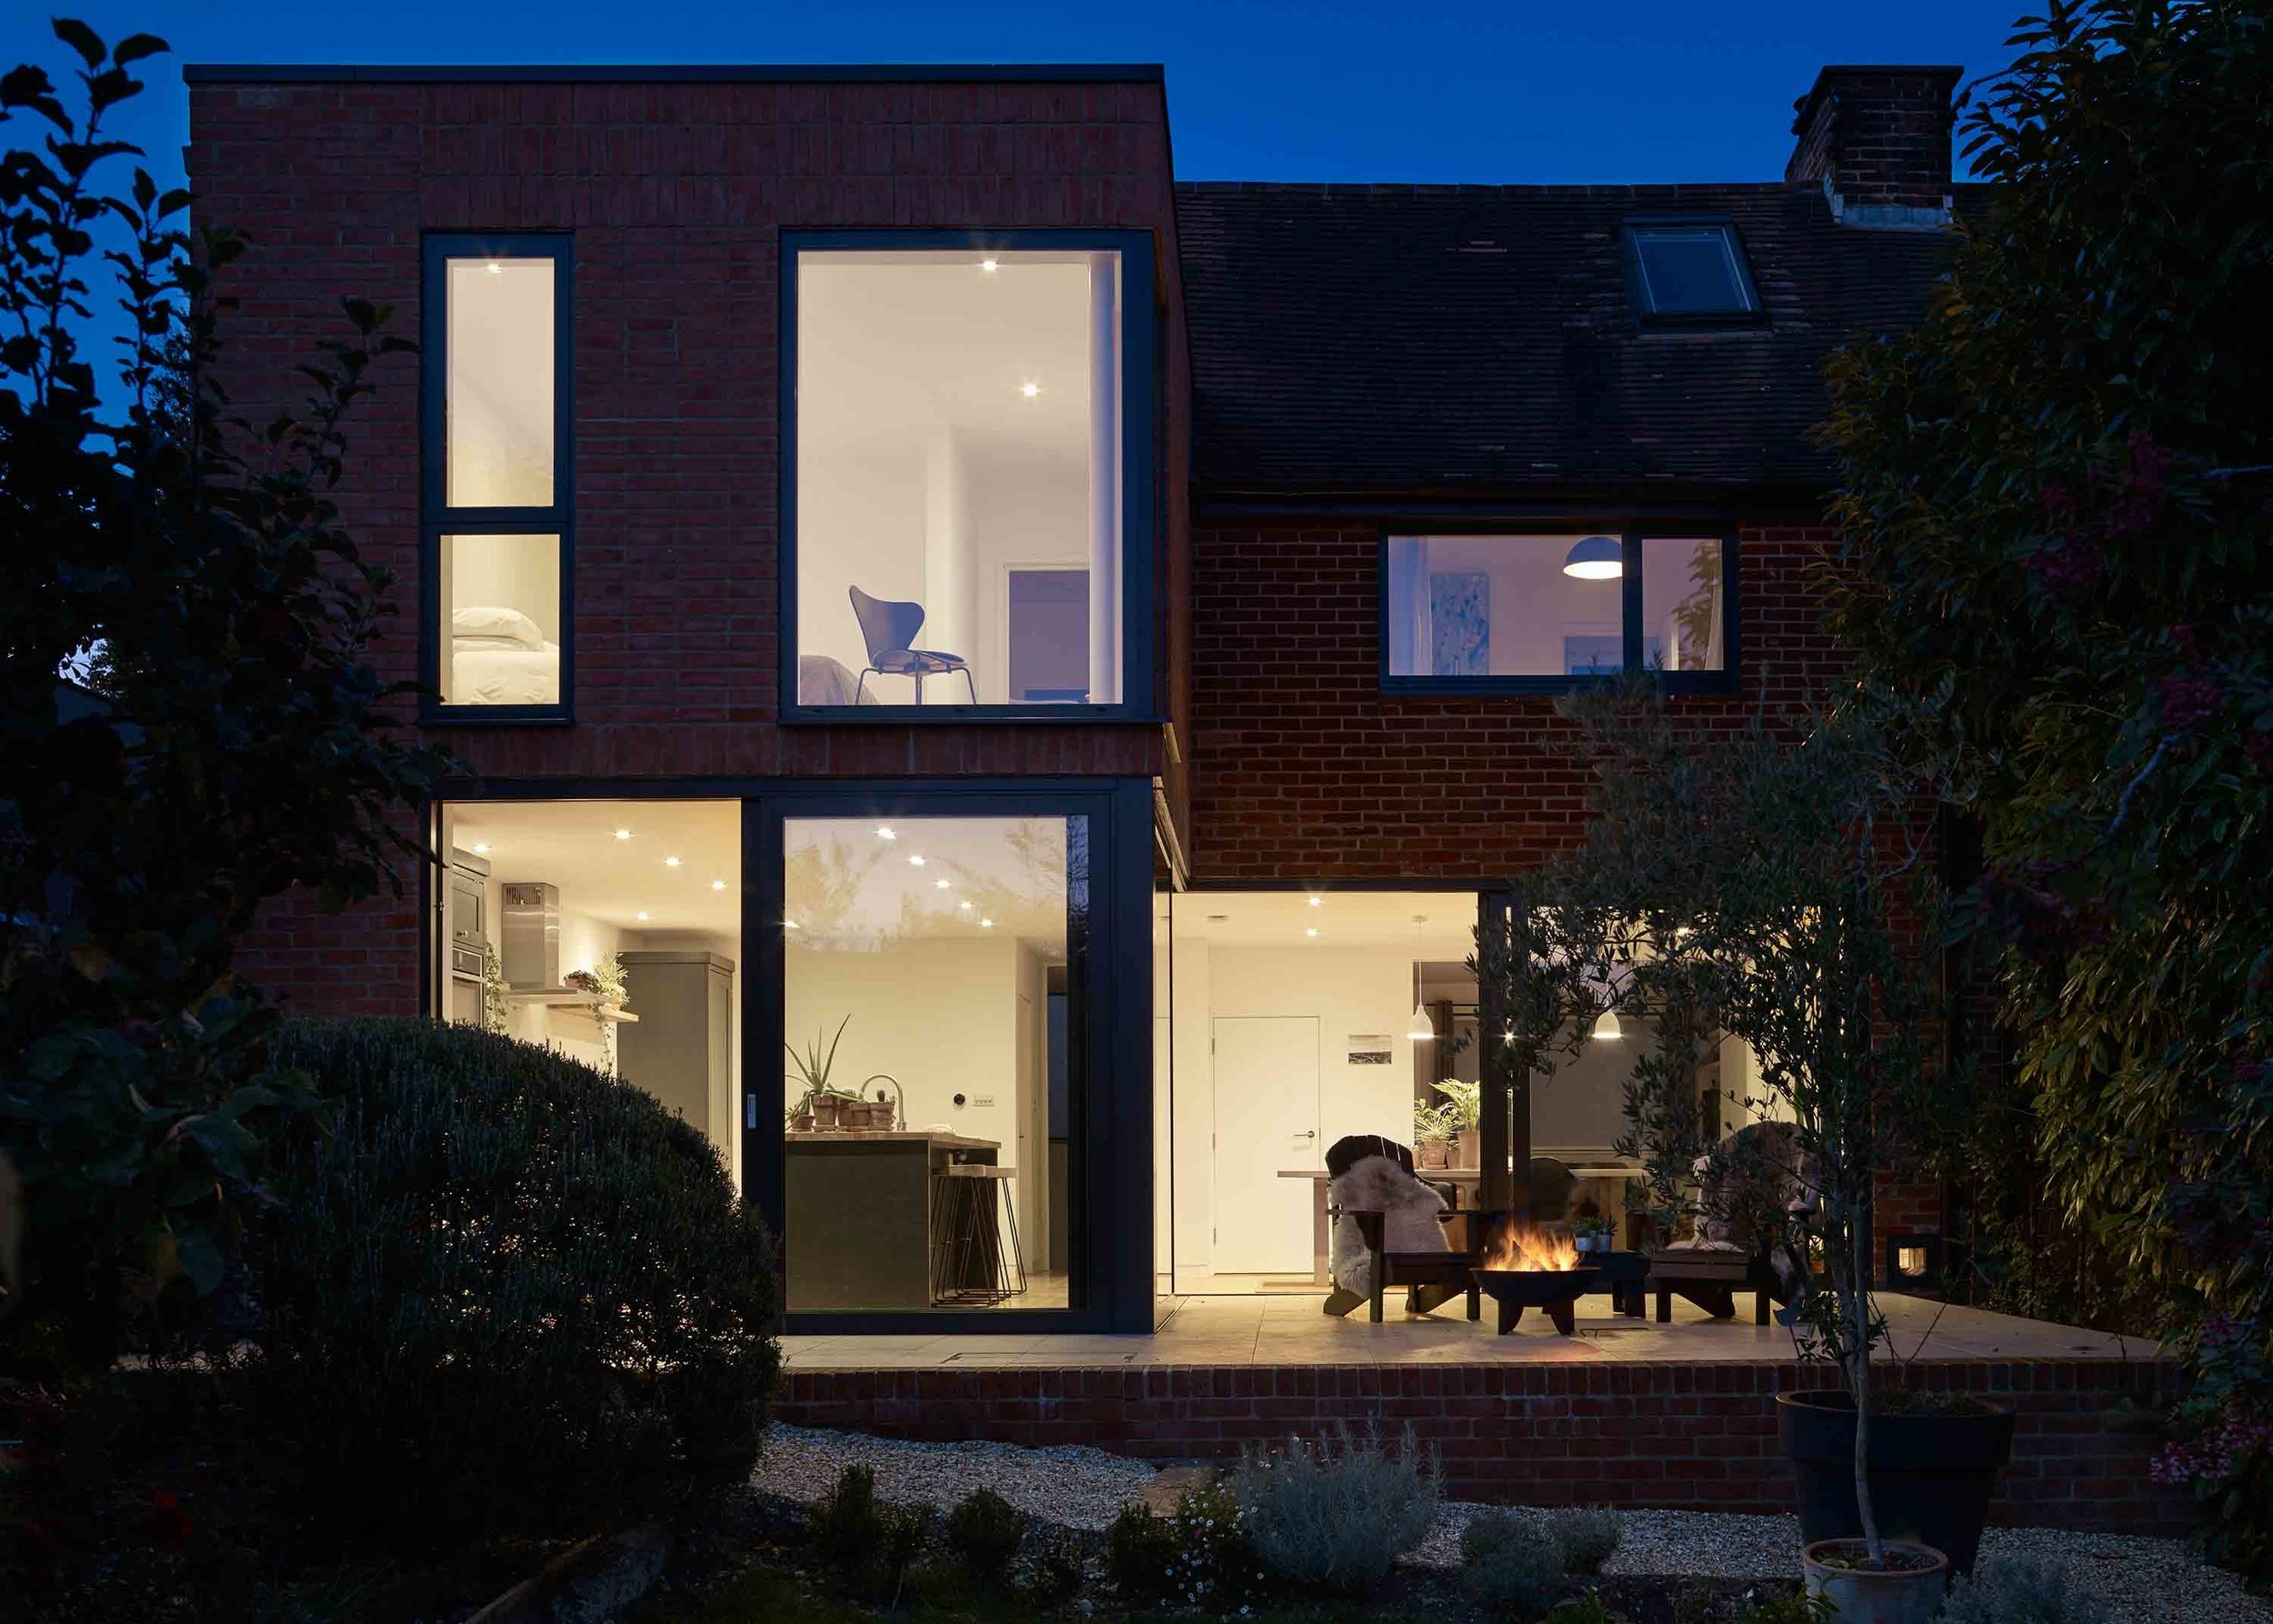 OBA_The-Brick-House_15.jpg